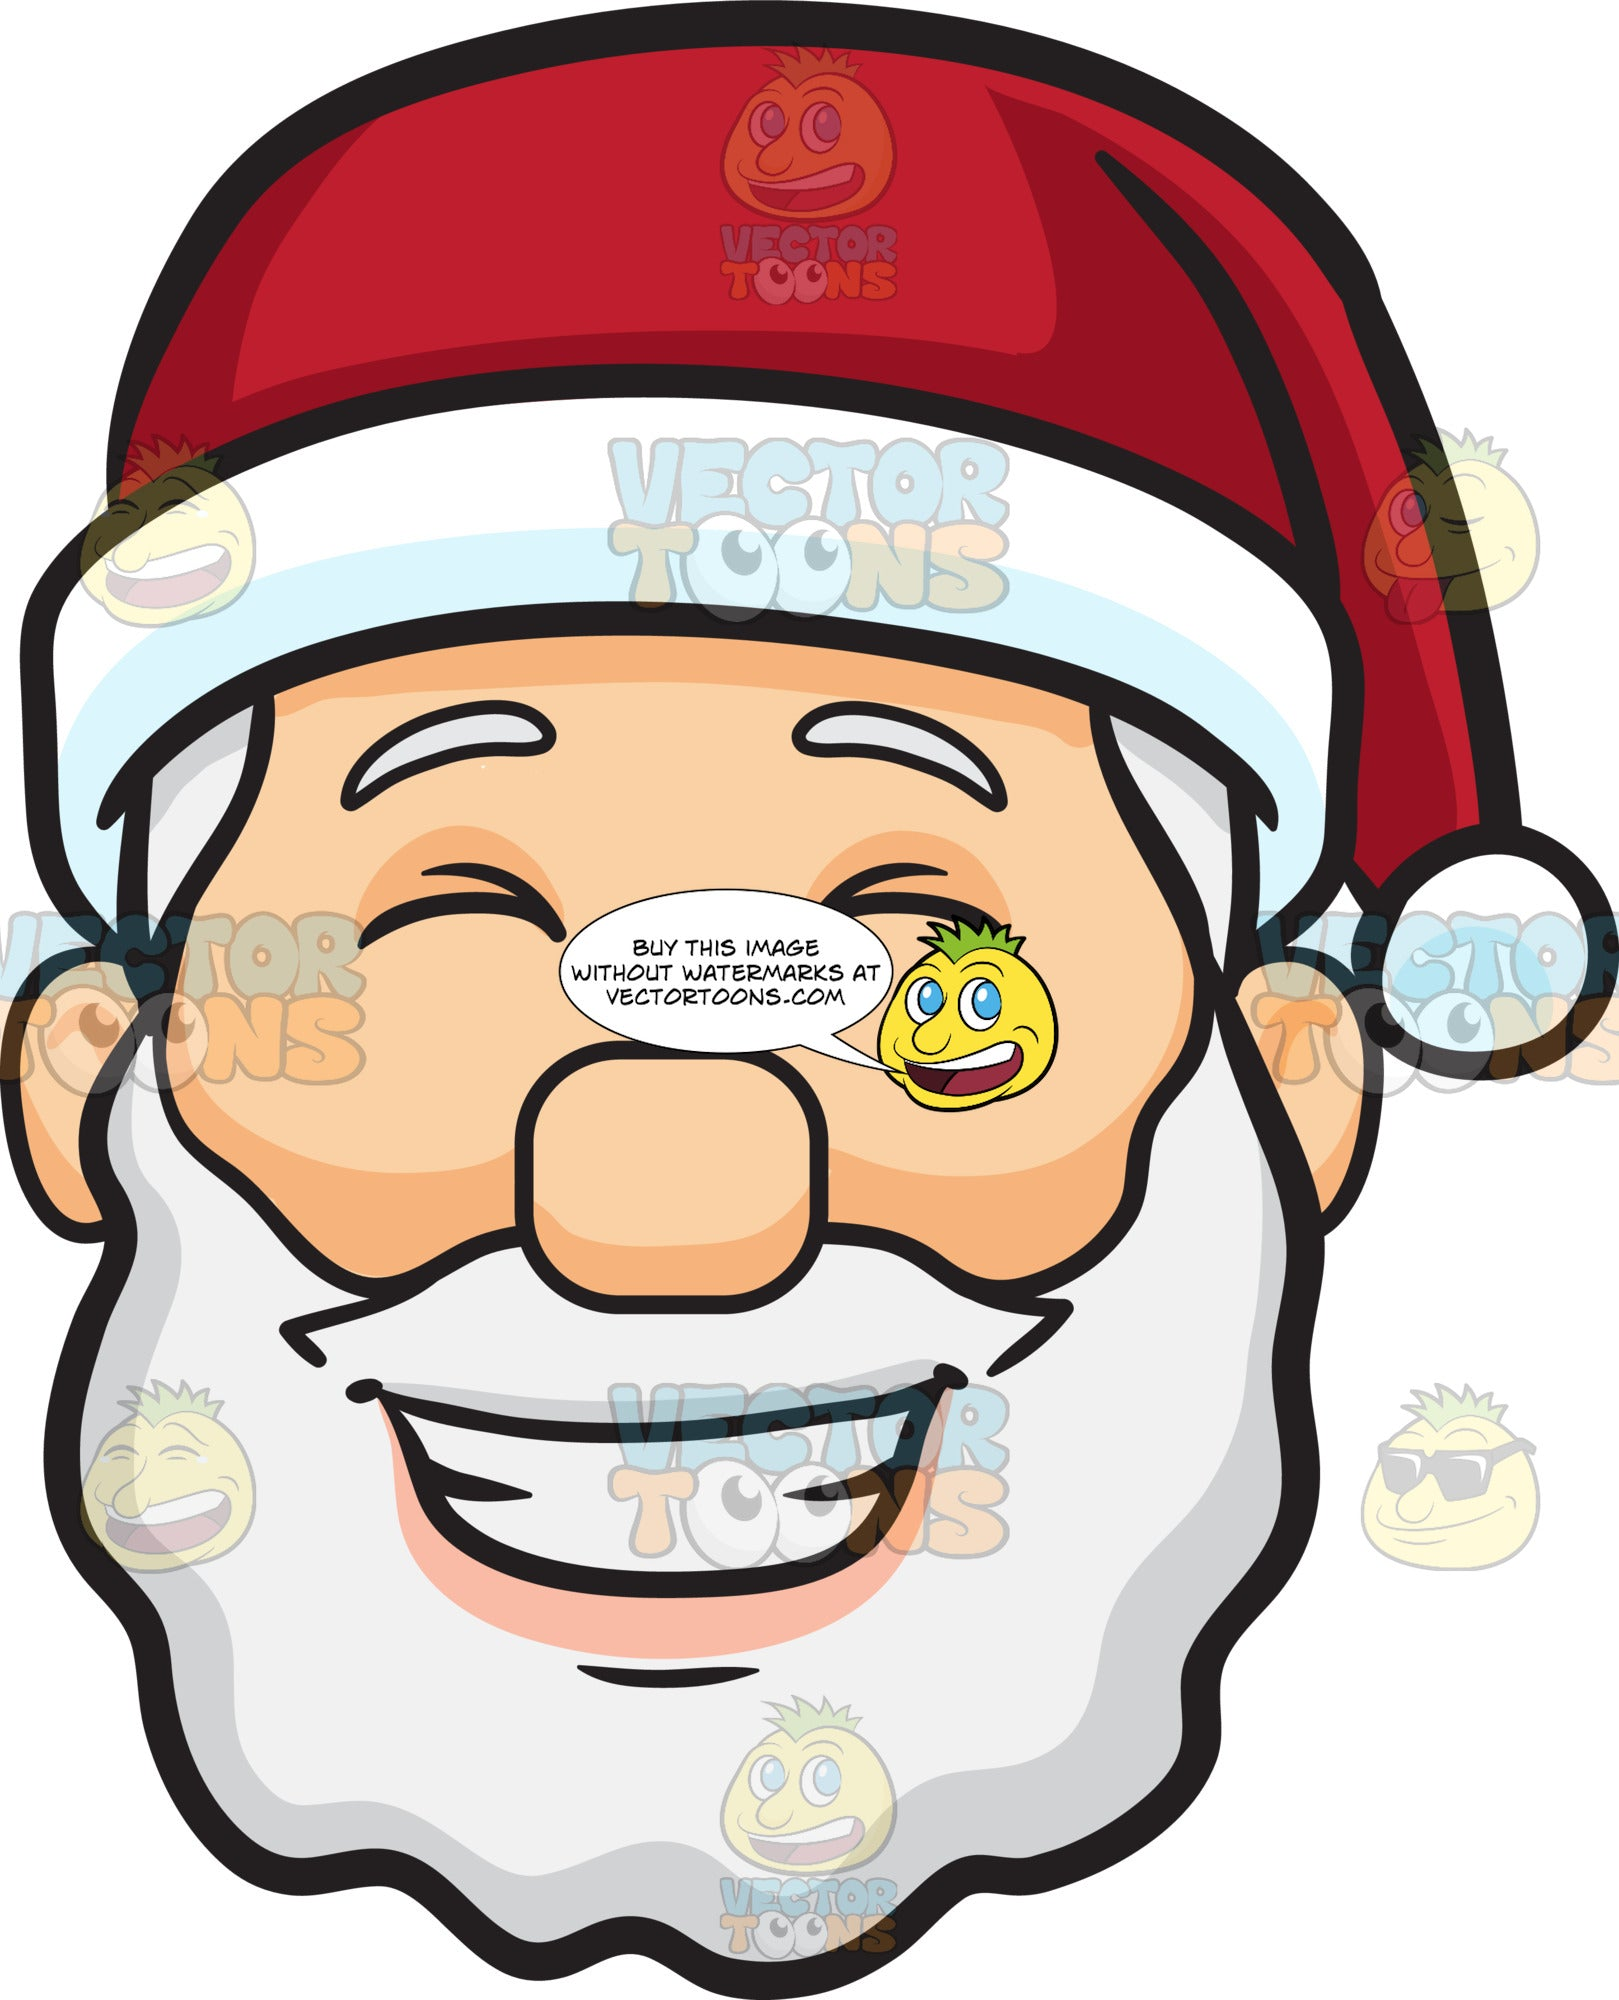 A Face Of Santa Claus Grinning In Delight